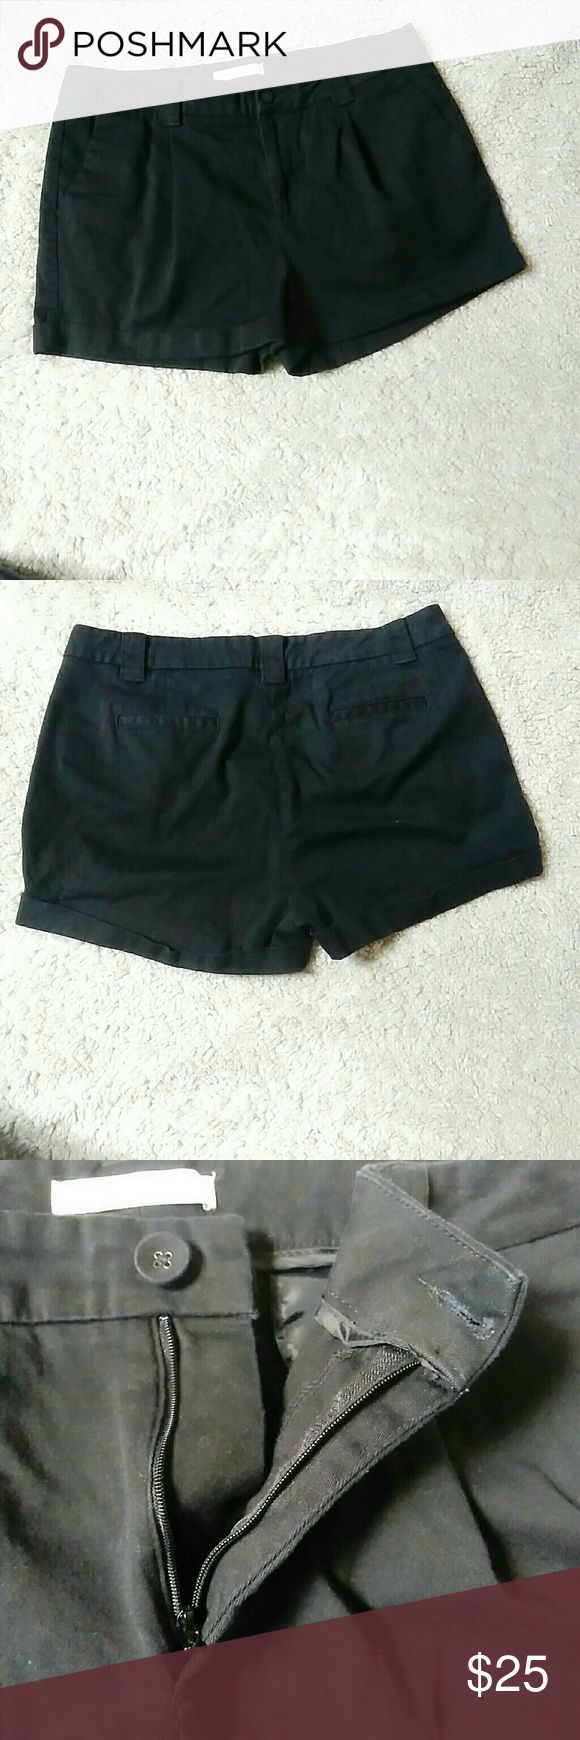 """French Connection black cuffed casual shorts UK Style French Connection black cuffed casual shorts. Size 12. No rips or stains. Zipper fly with button closure. 2 pockets in front. The 2 in back are fake. Waist is approximately 17.5"""" inseam is approximately 2.5"""" cuff on bottom is approximately 1.5"""" rise is approximately 8"""" leg opening is approximately 11"""" French Connection Shorts"""